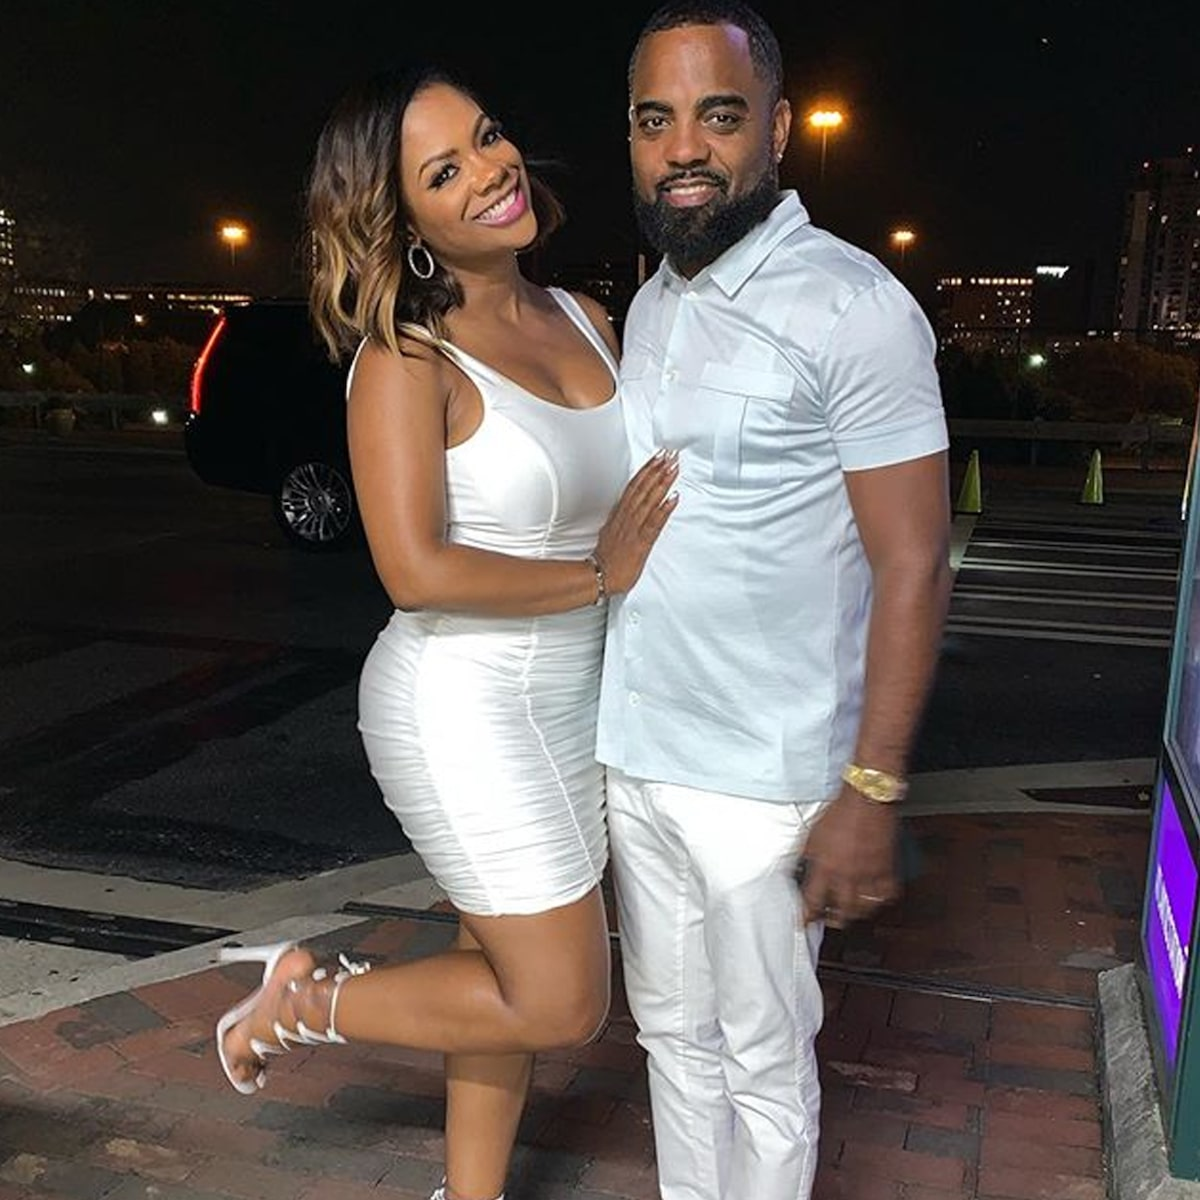 kandi-burruss-shows-off-her-jaw-dropping-new-look-and-fans-are-mesmerized-see-her-photo-here